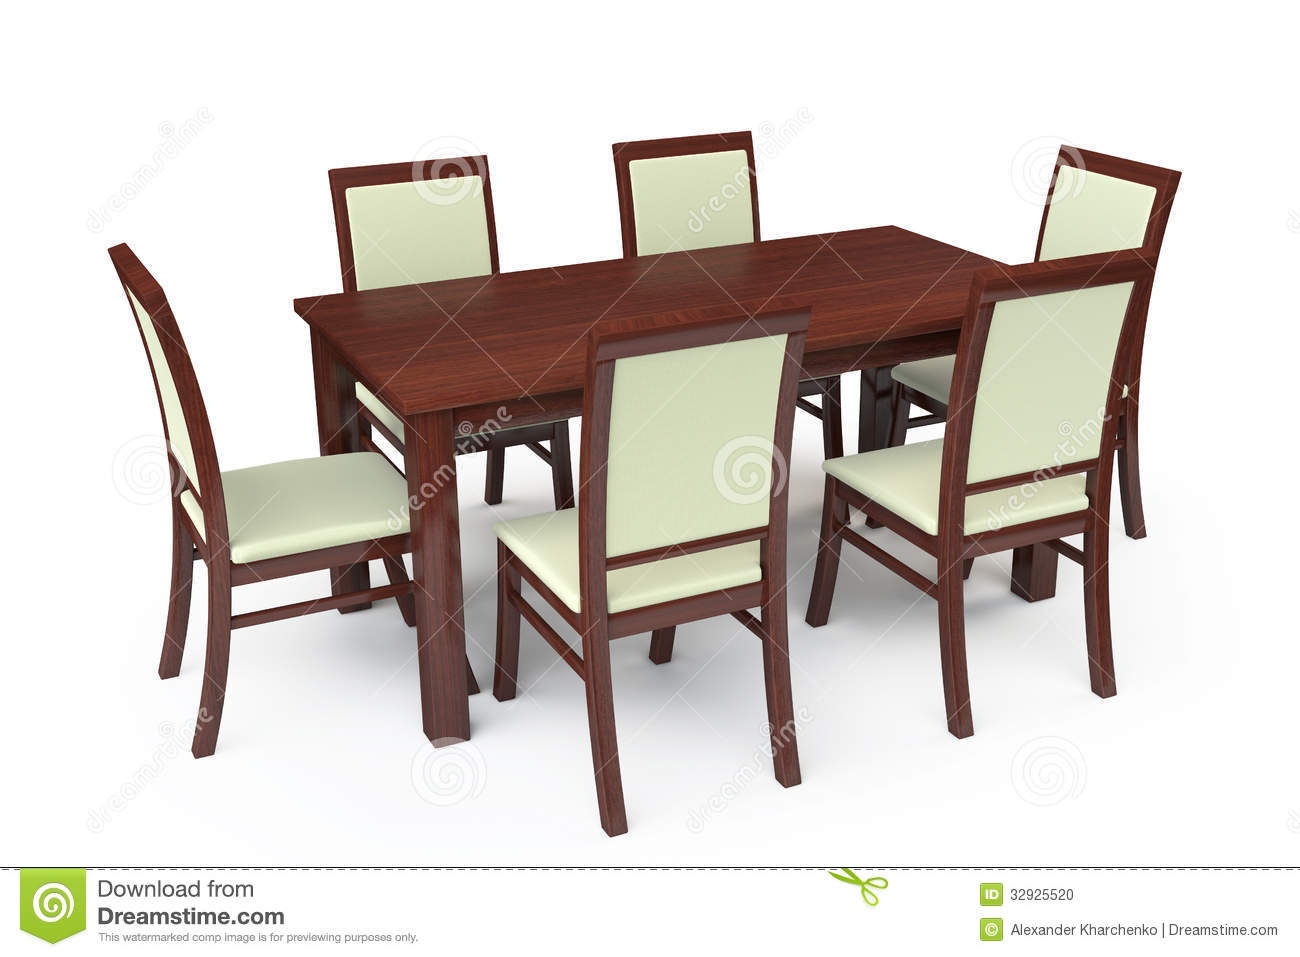 dining table with six chairs stock illustration illustration of large brown 32925520. Black Bedroom Furniture Sets. Home Design Ideas